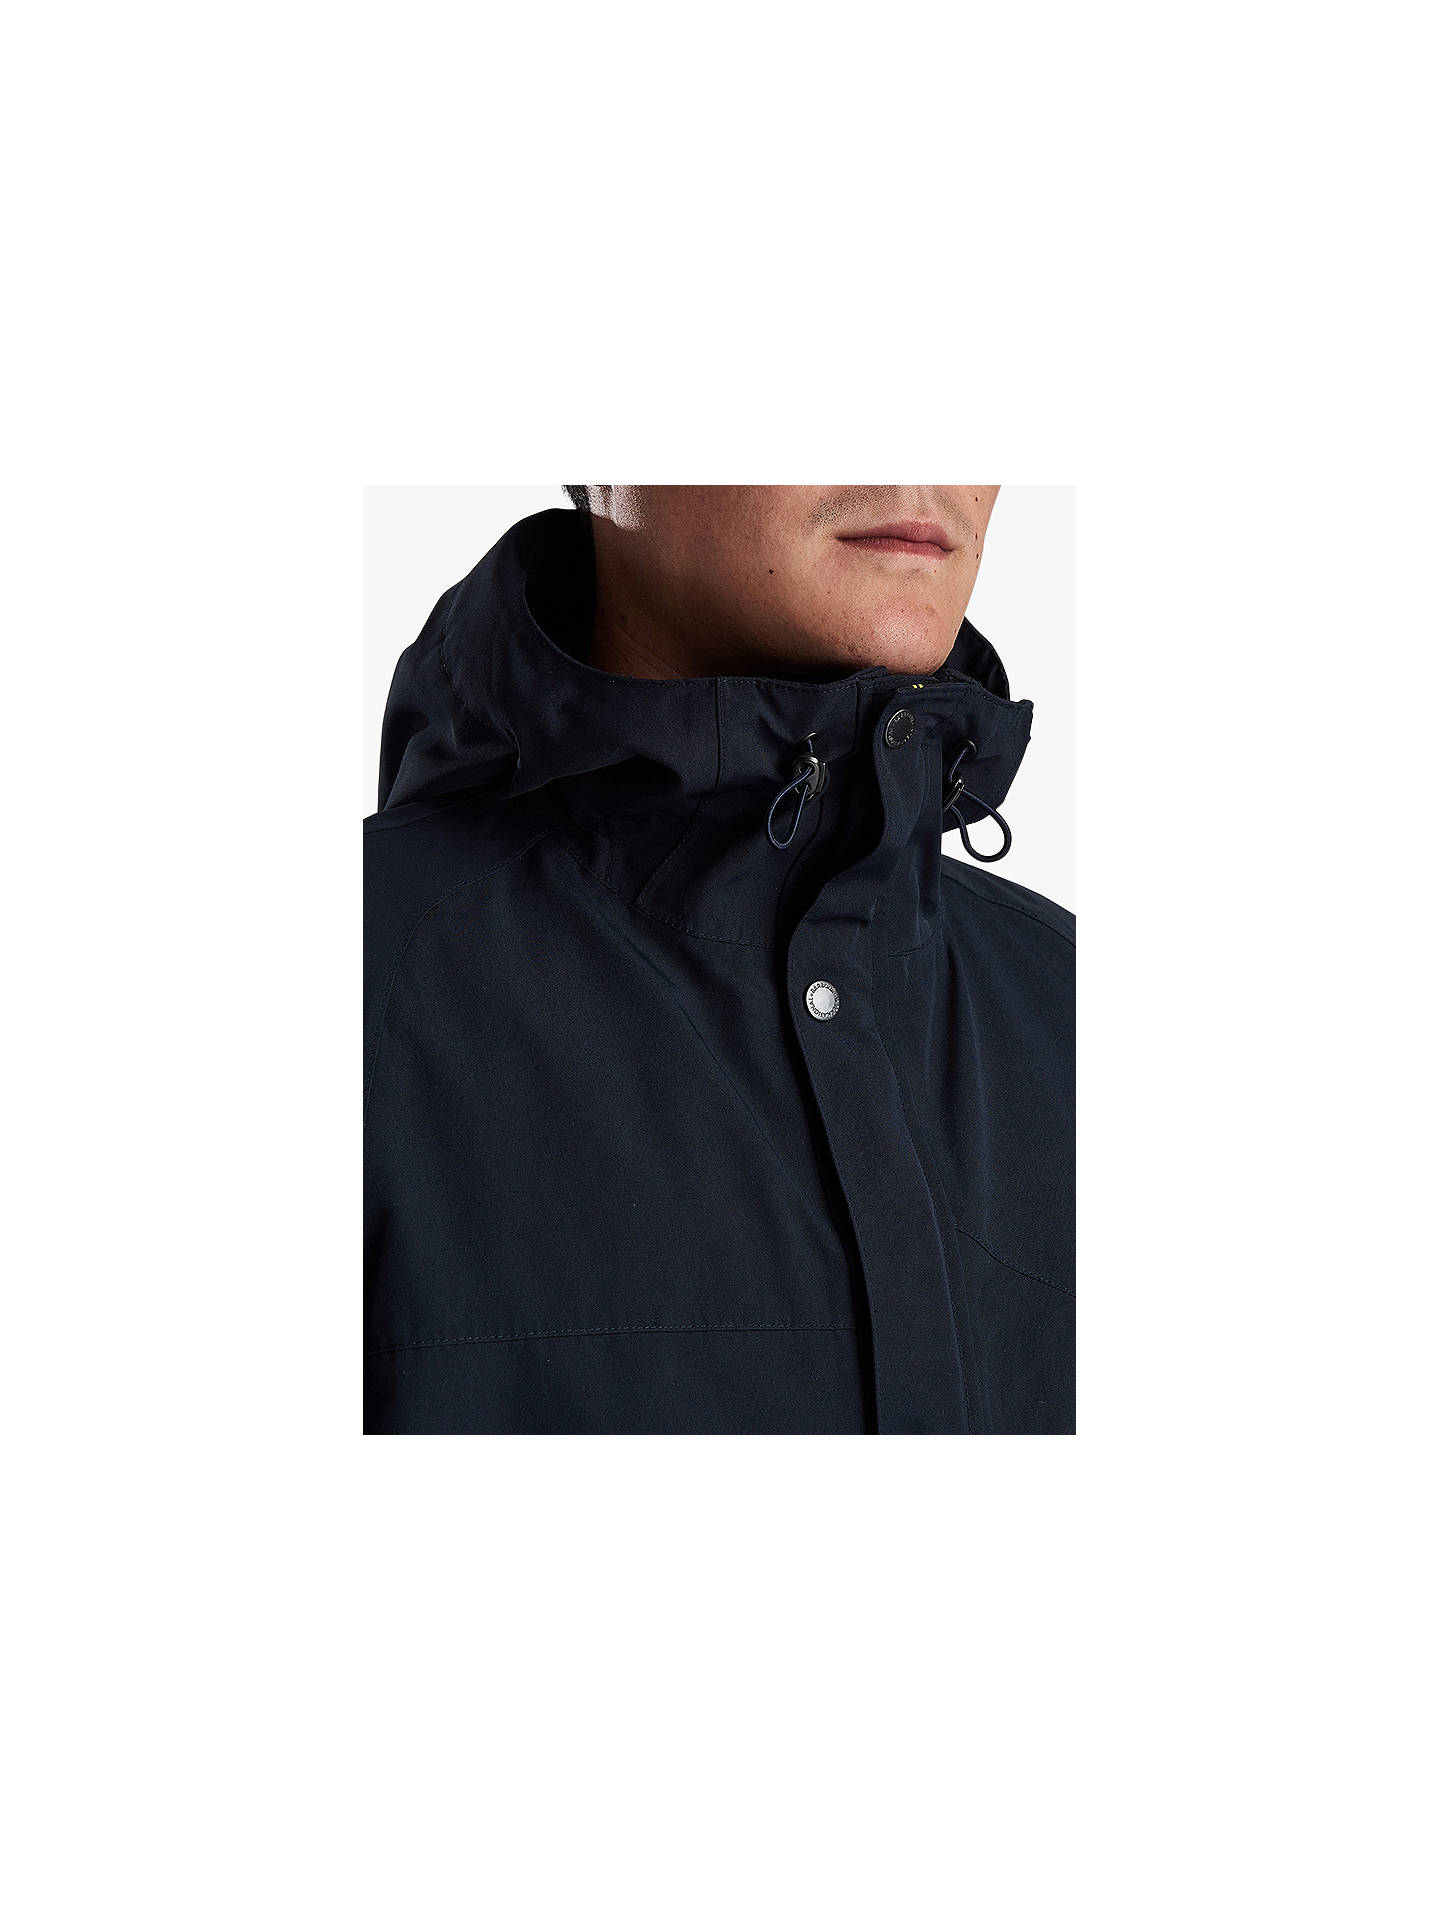 BuyBarbour International Ridge Waterproof Parka, Navy, M Online at johnlewis.com